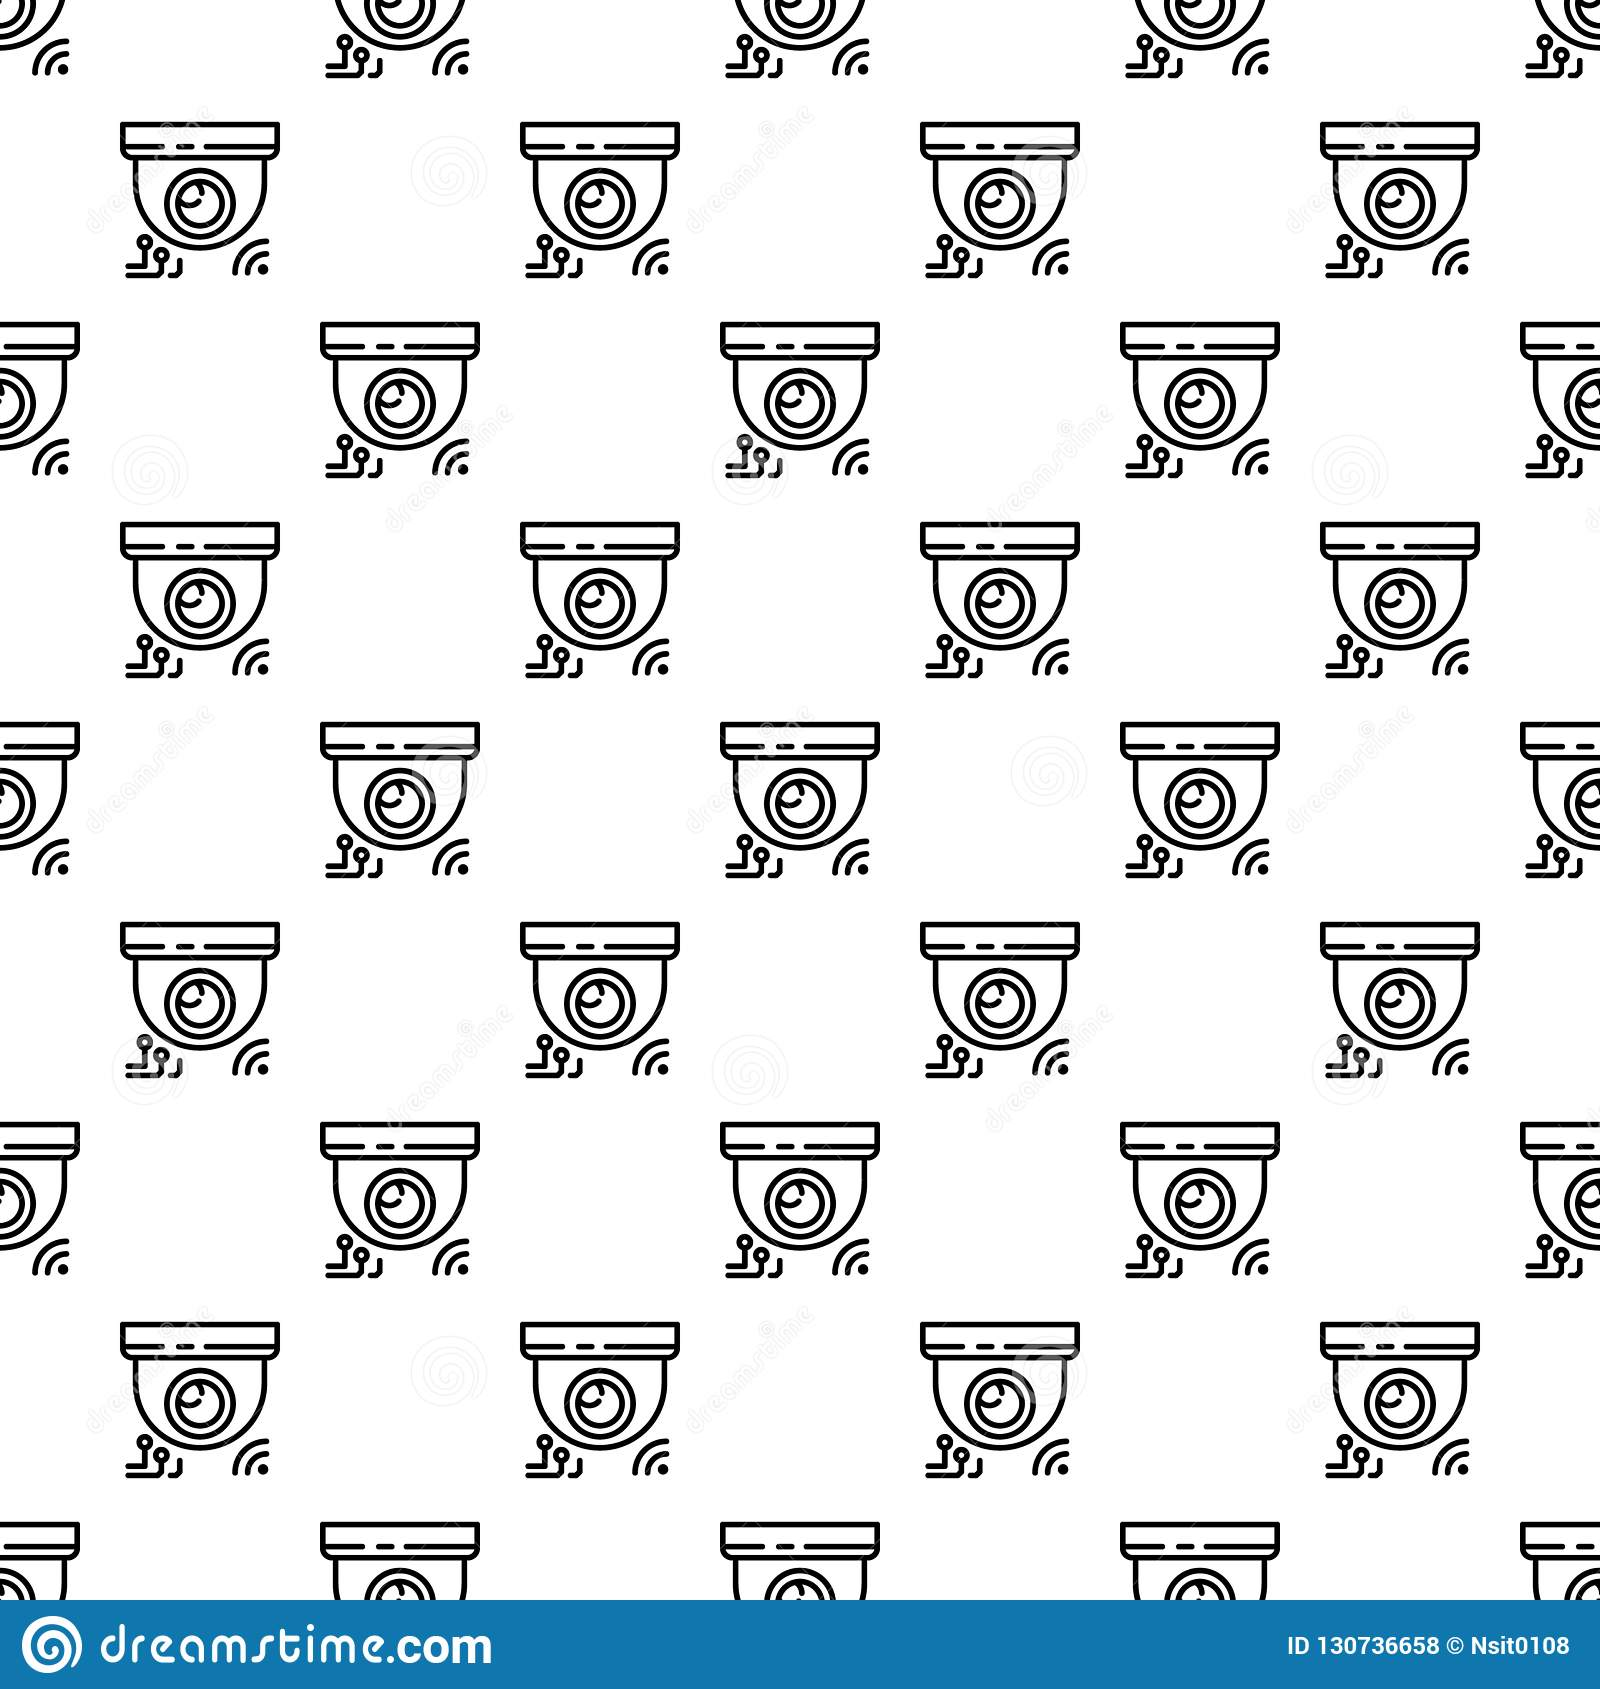 Indoor security camera pattern seamless